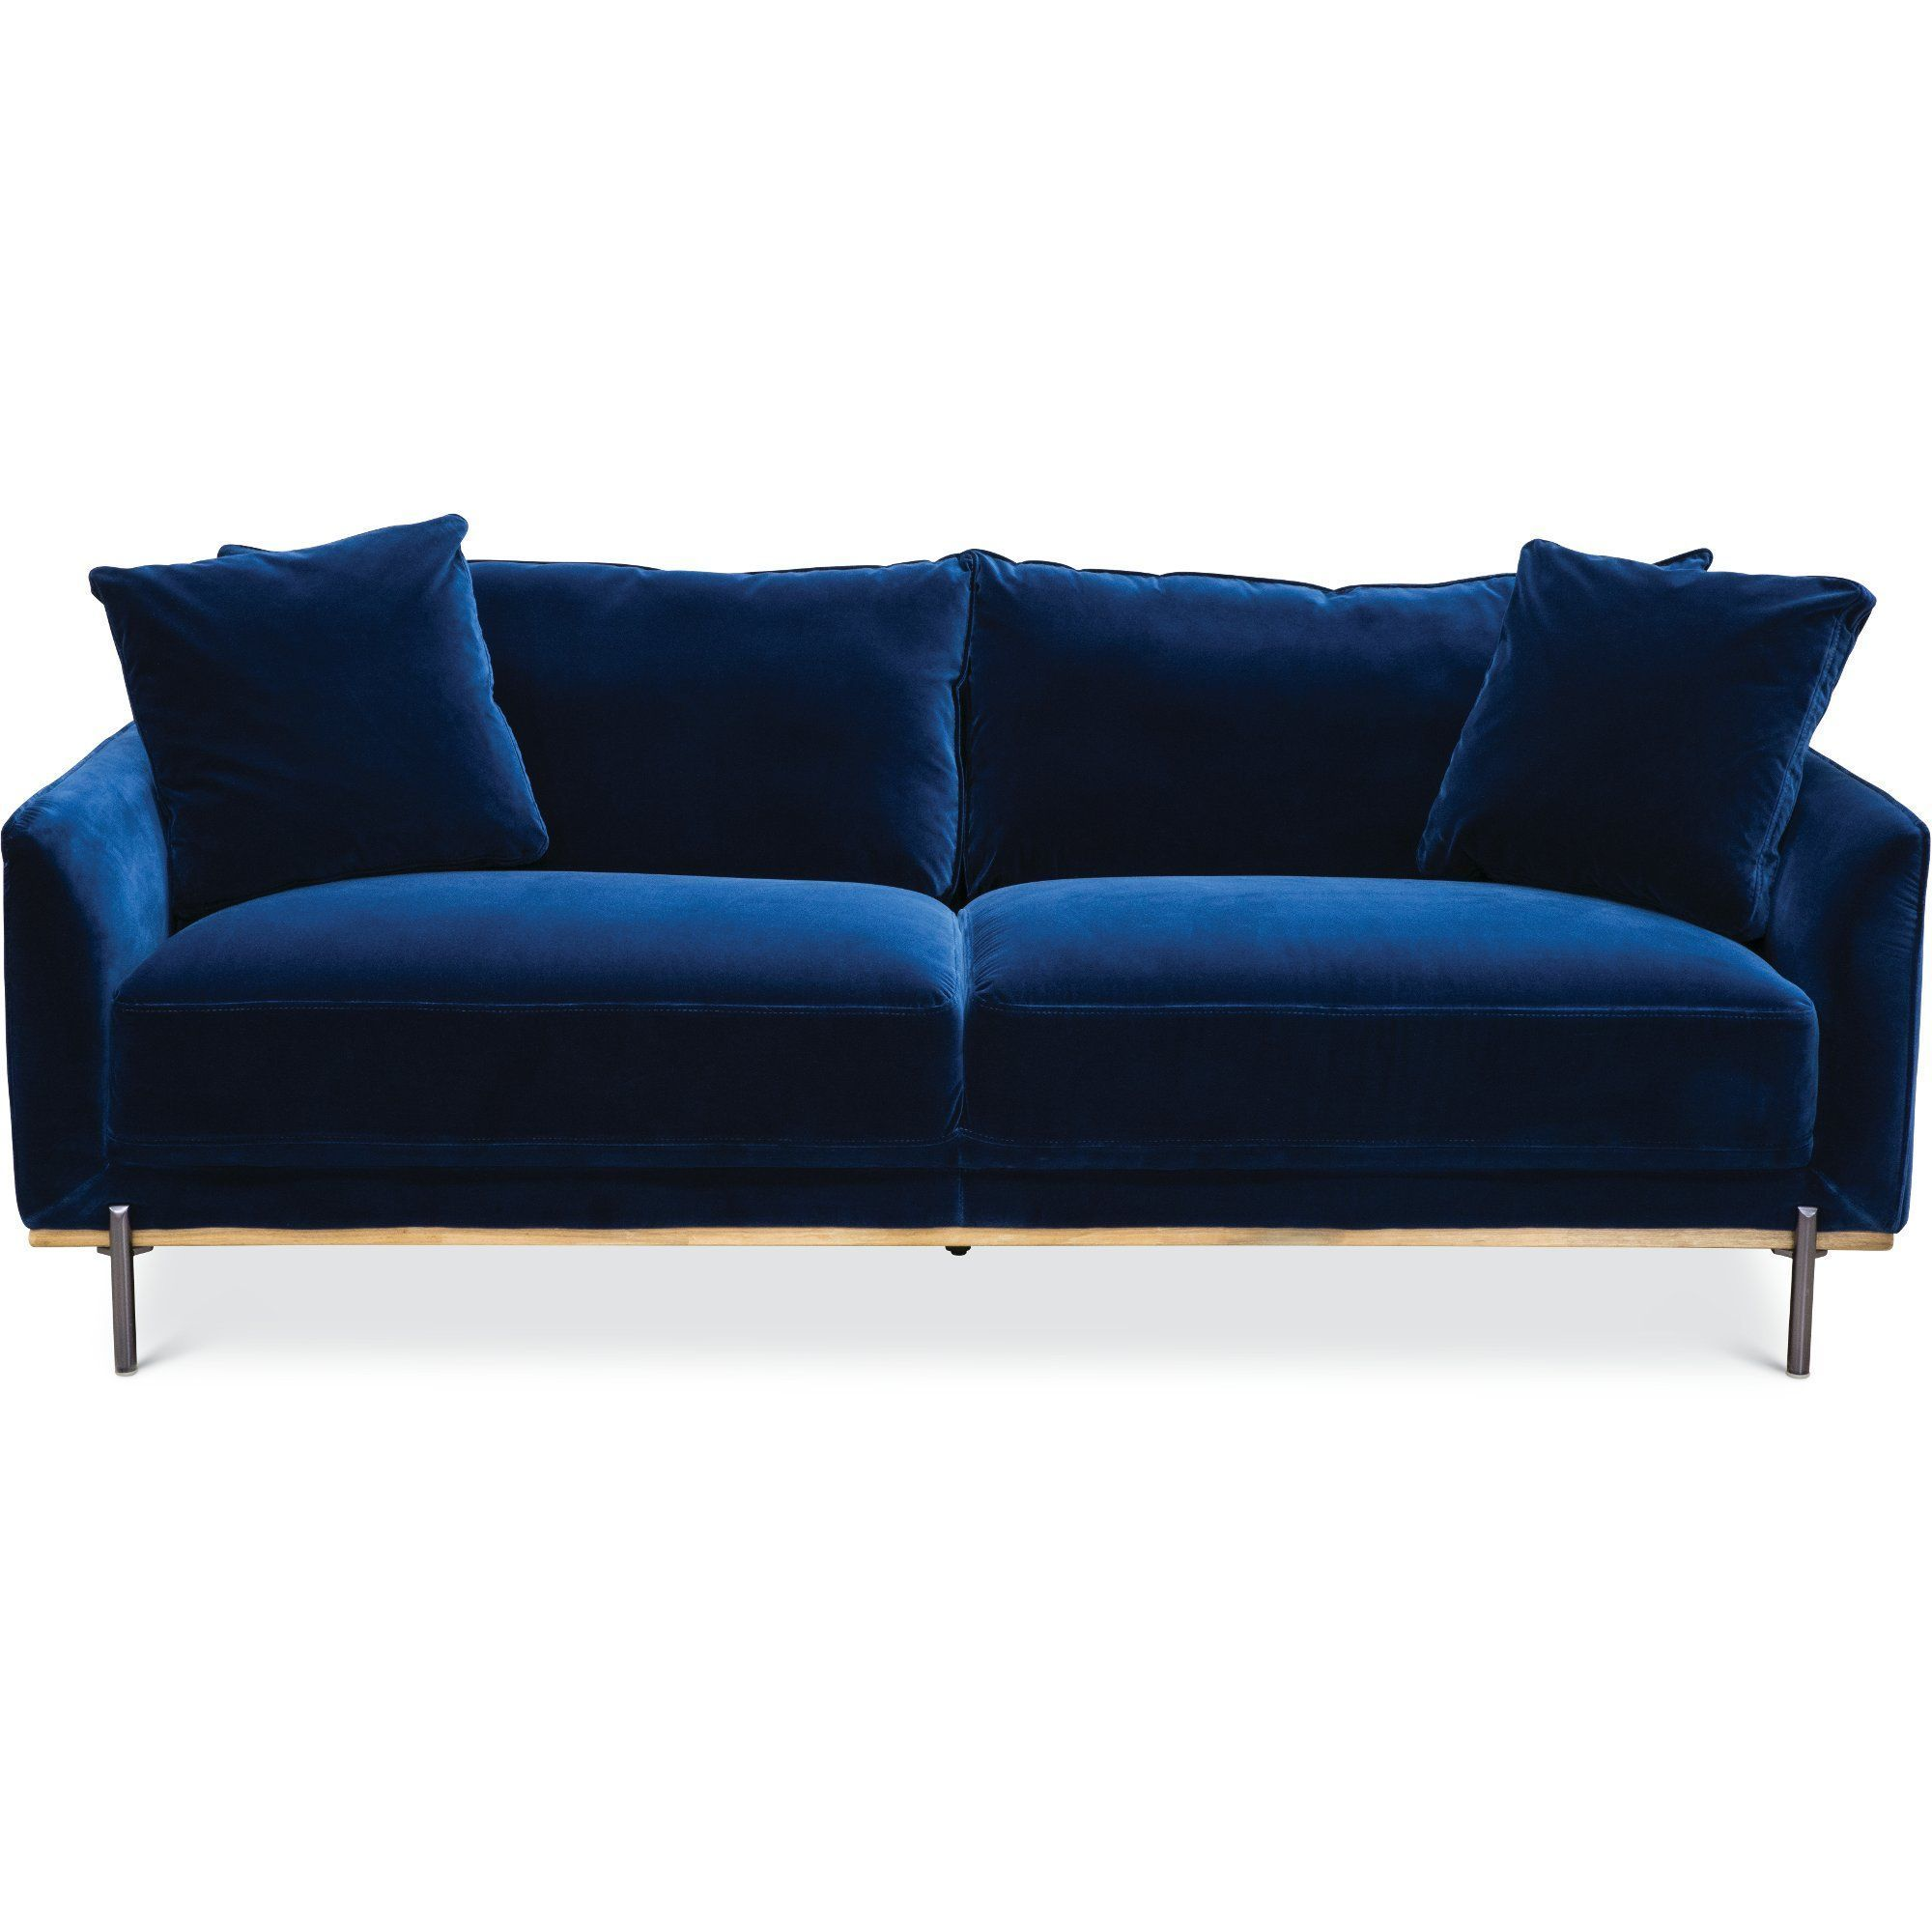 Modern Royal Blue Velvet Sofa - Marseille images